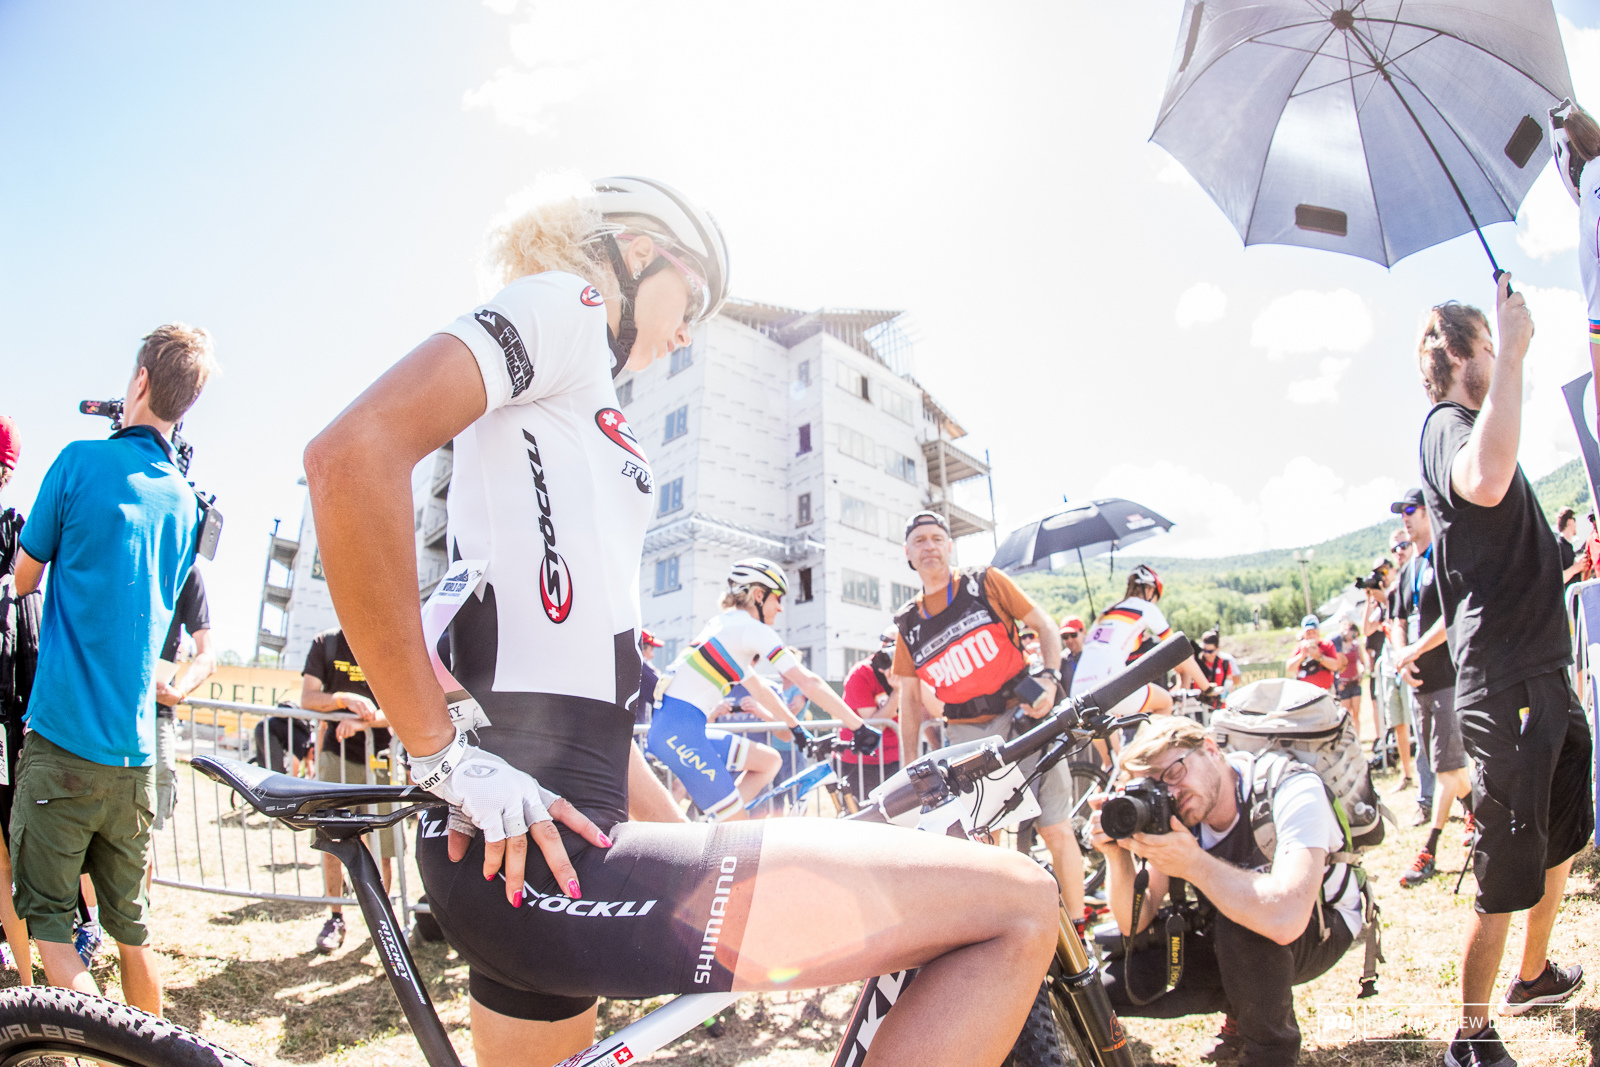 Jolanda Neff was focused at the start. Neff got caught in traffic at Kabush Falls and had to dismount which cost her twenty places. If things had gone differently she would probably have another win under her belt.